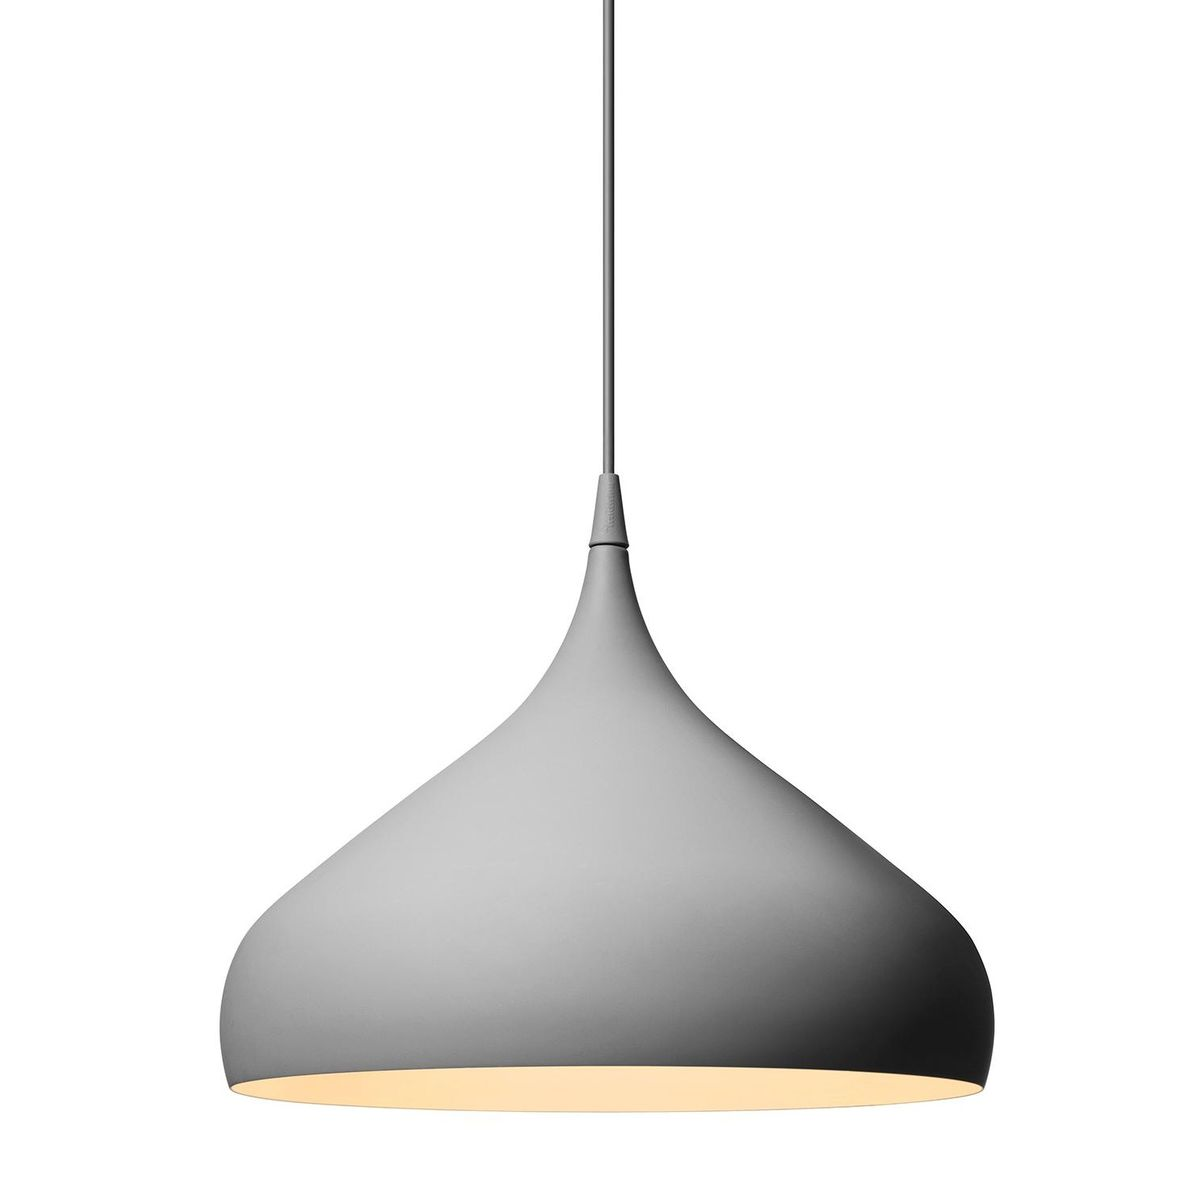 Spinning light bh2 suspension lamp andtradition for Suspension 4 lampes